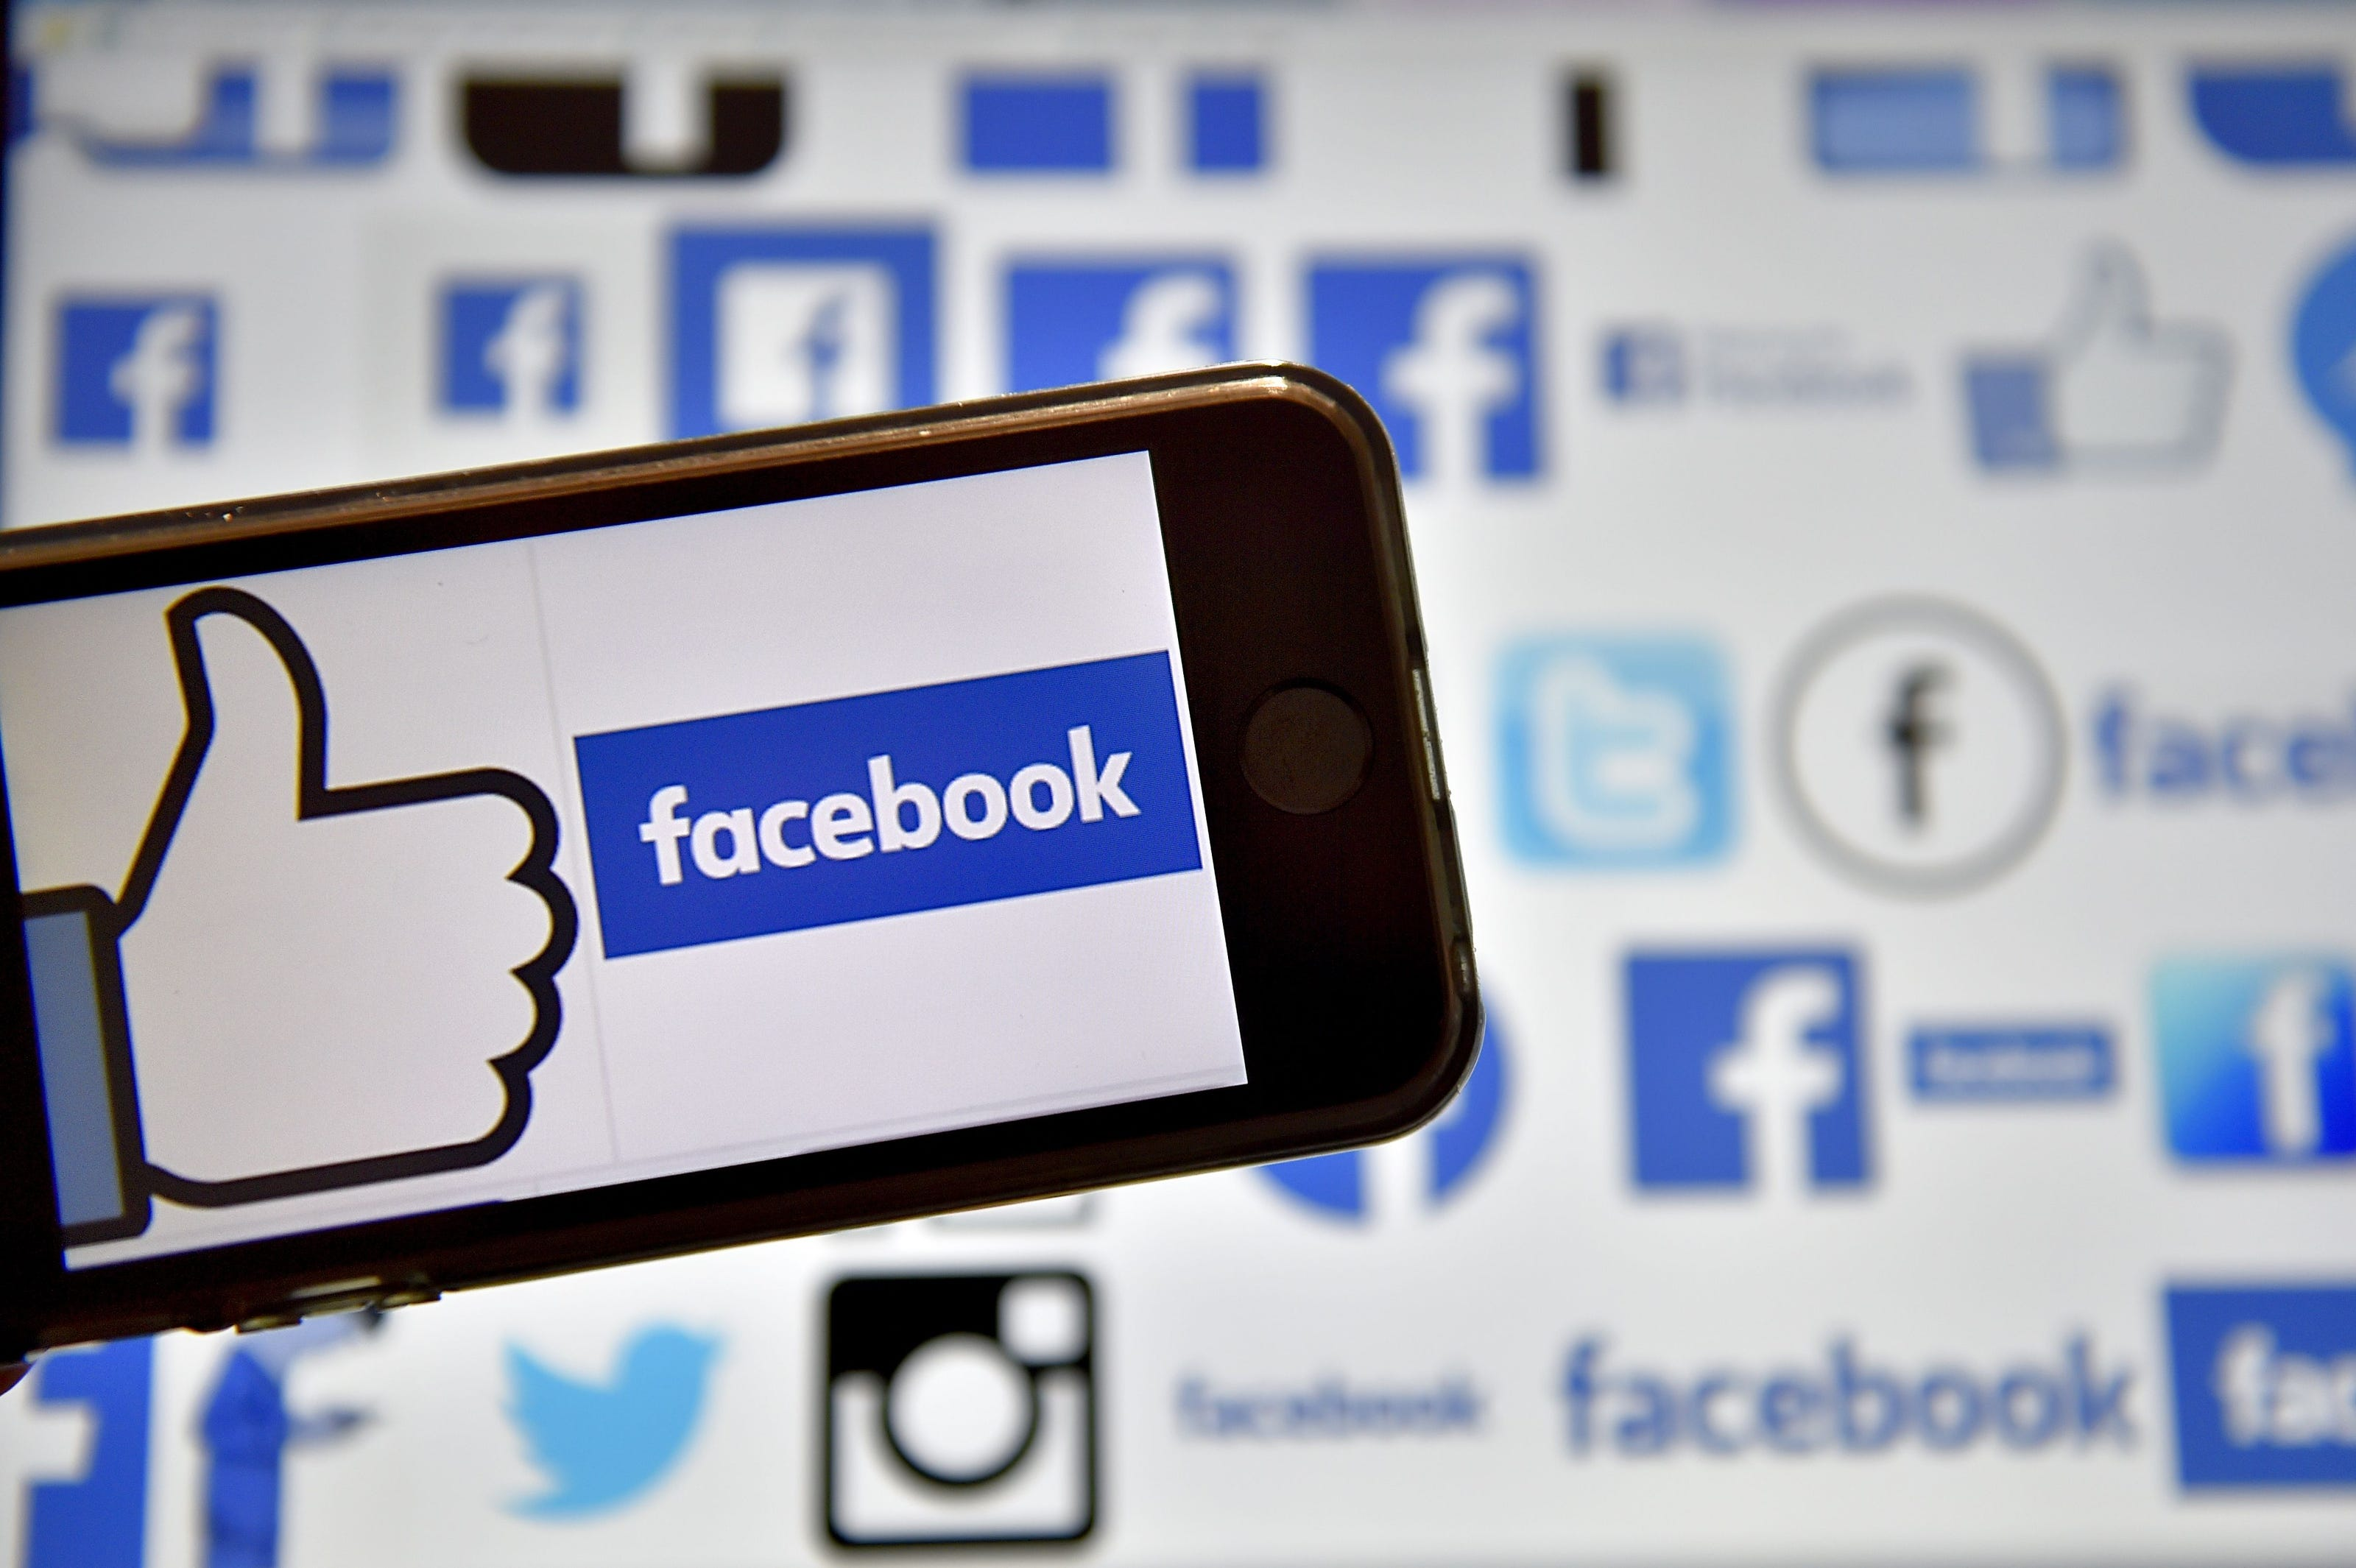 Facebook and Instagram are officially back and blaming server configuration change for outage